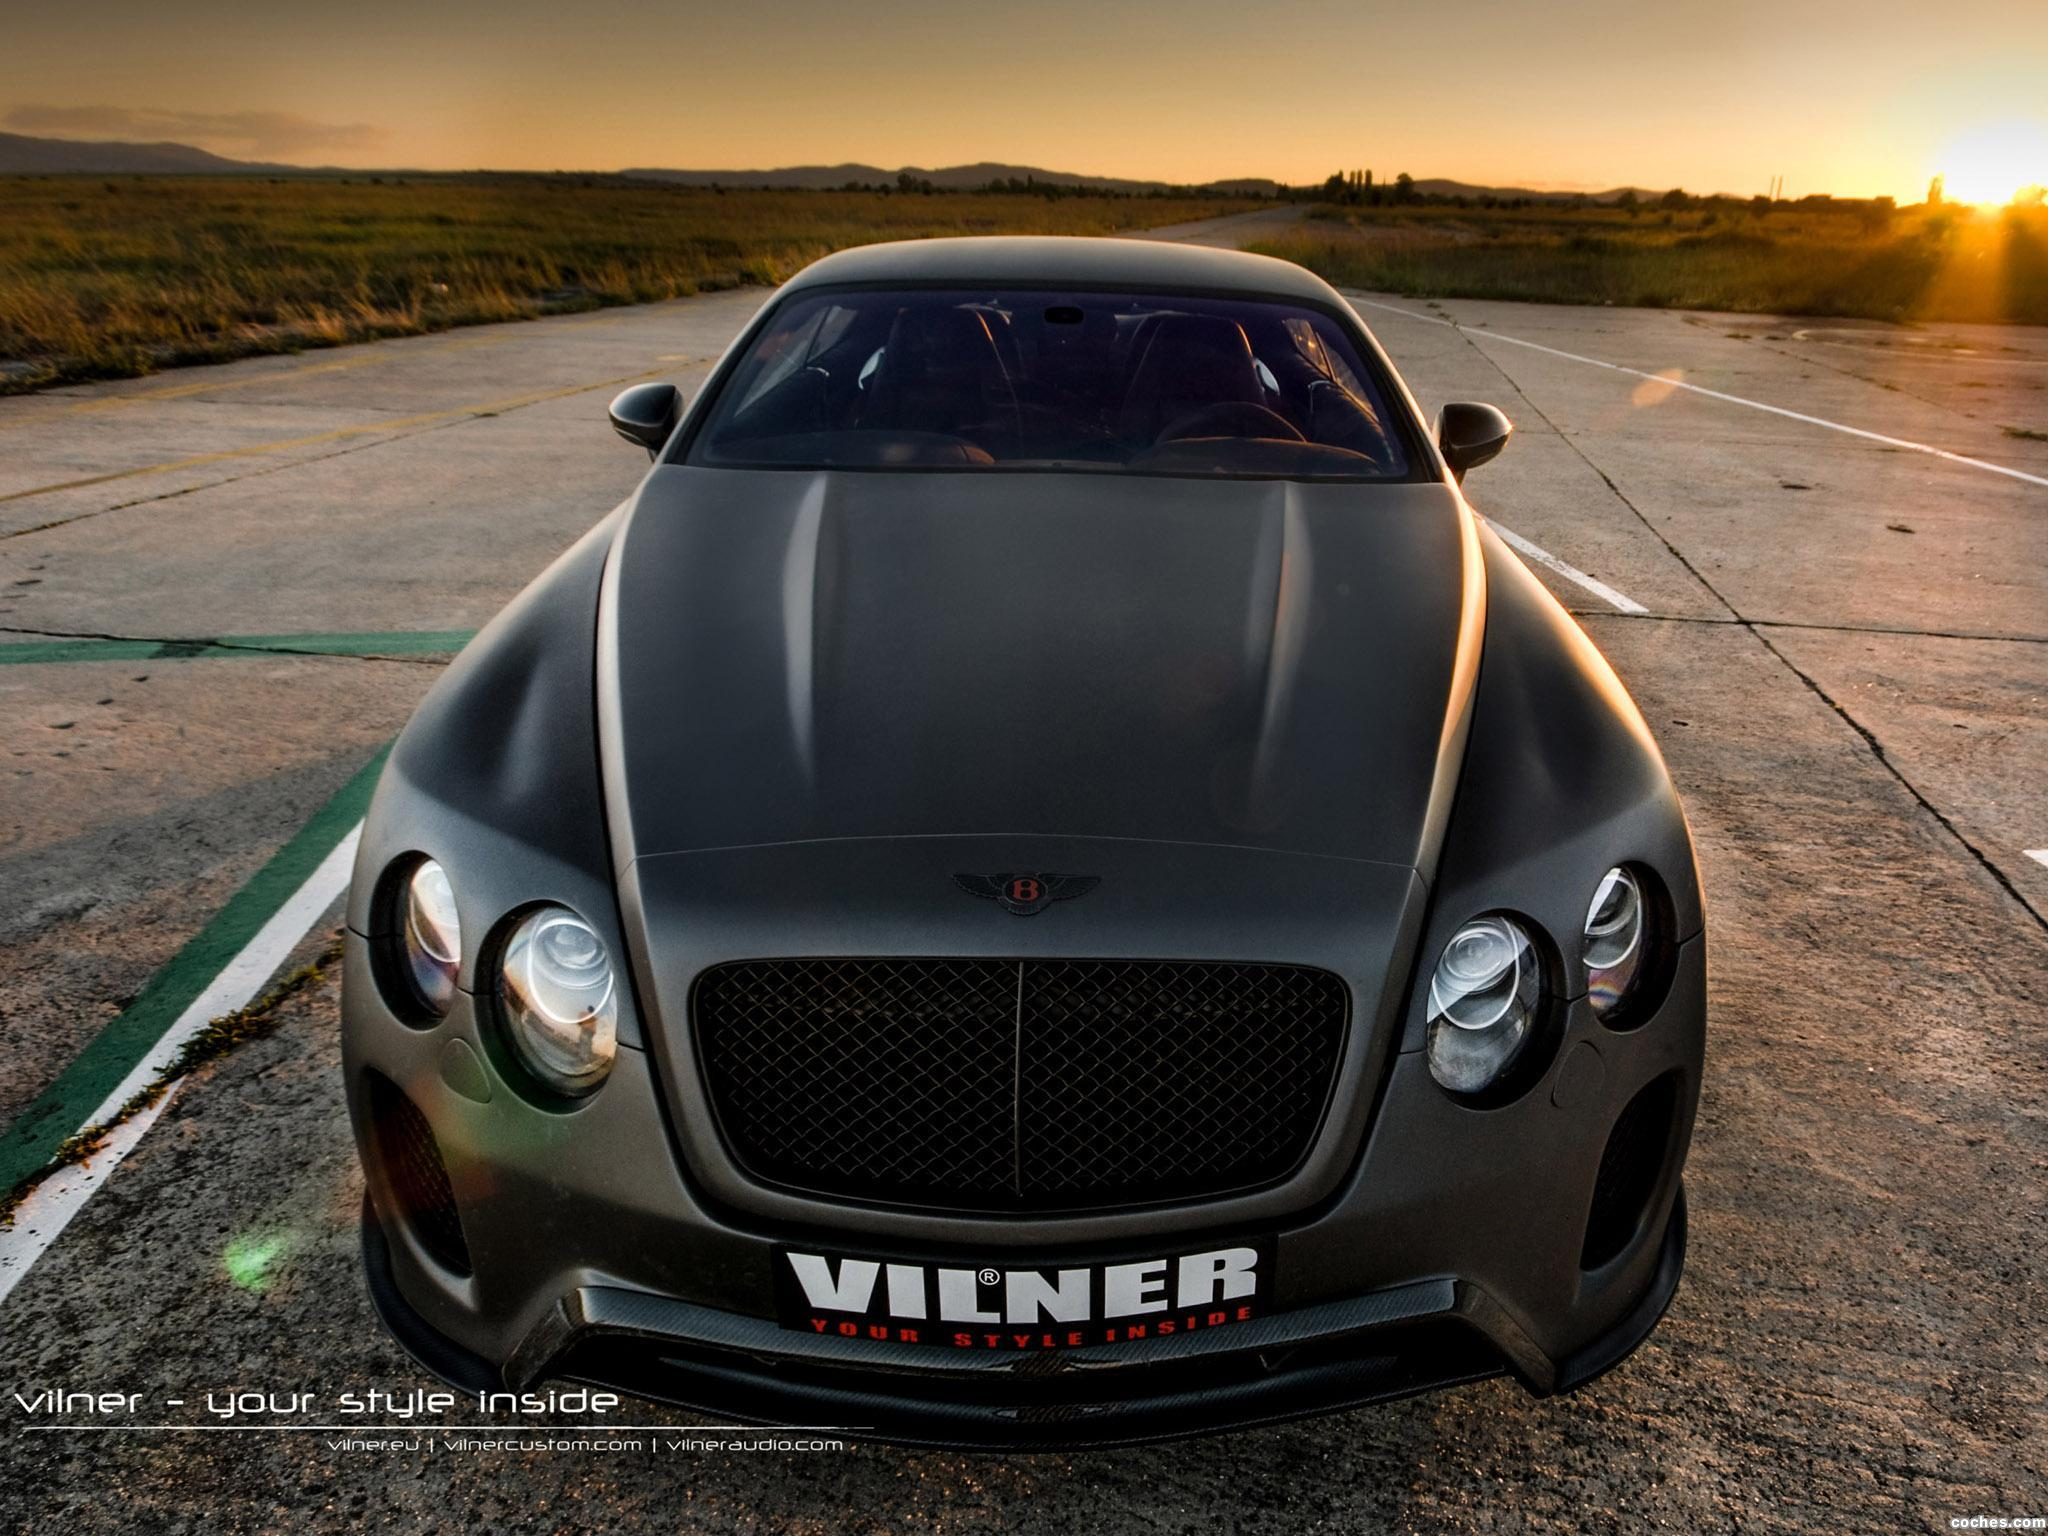 Foto 0 de Vilner Bentley Continental GT 2013